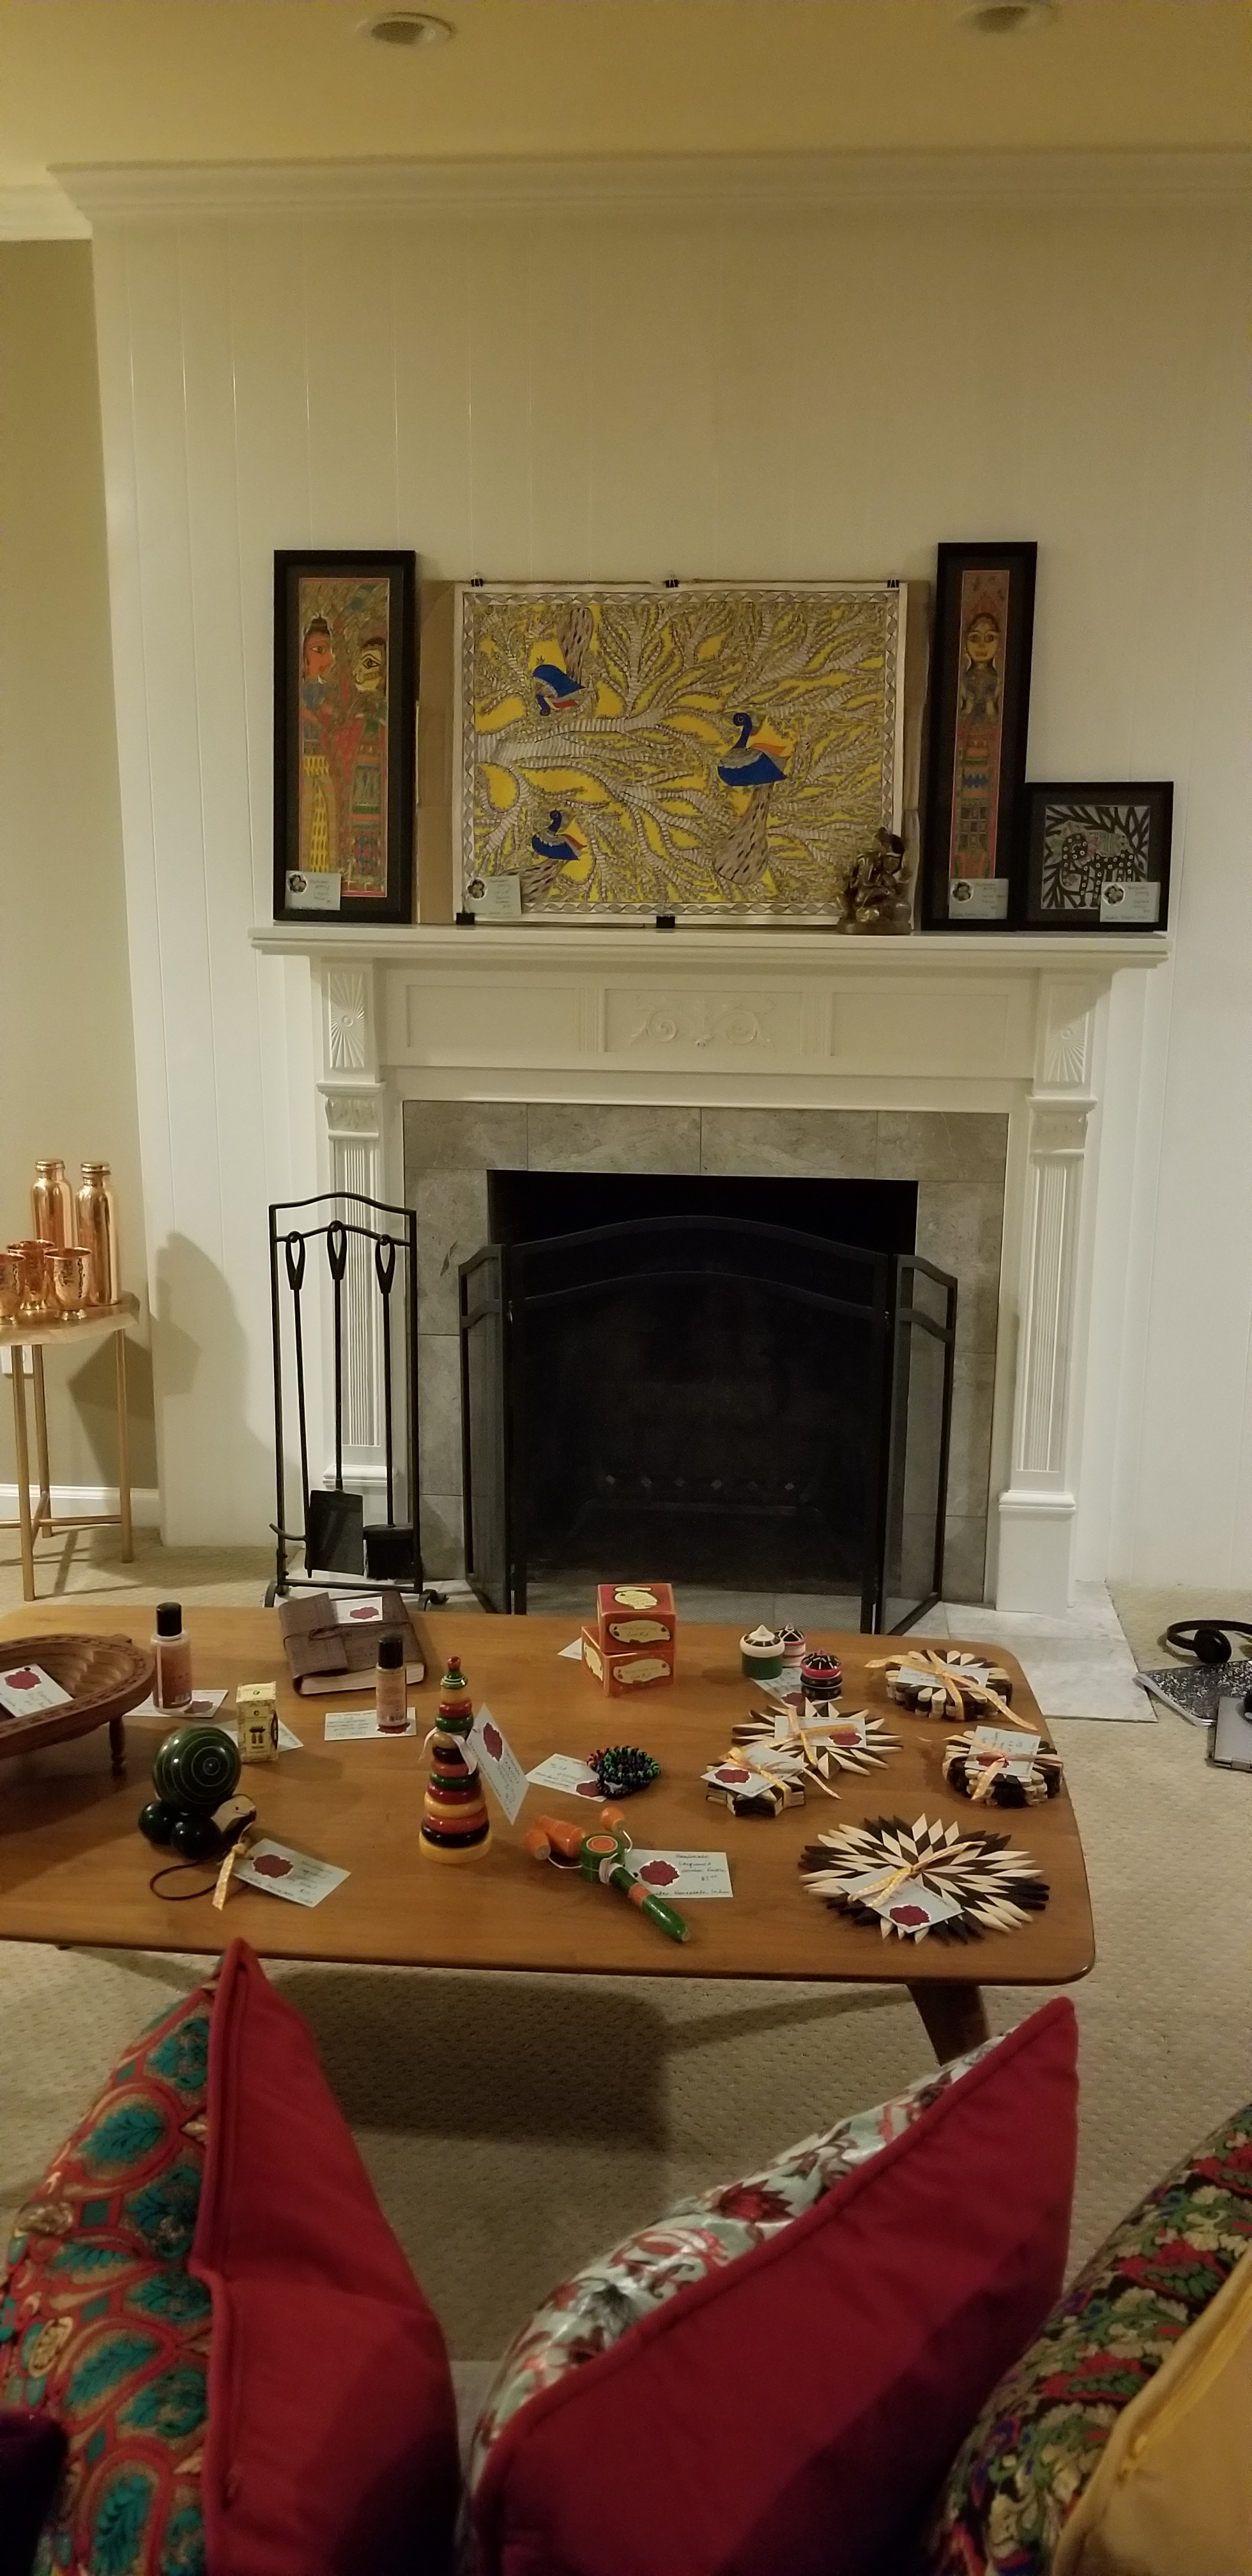 Various paintings and woodworking arts